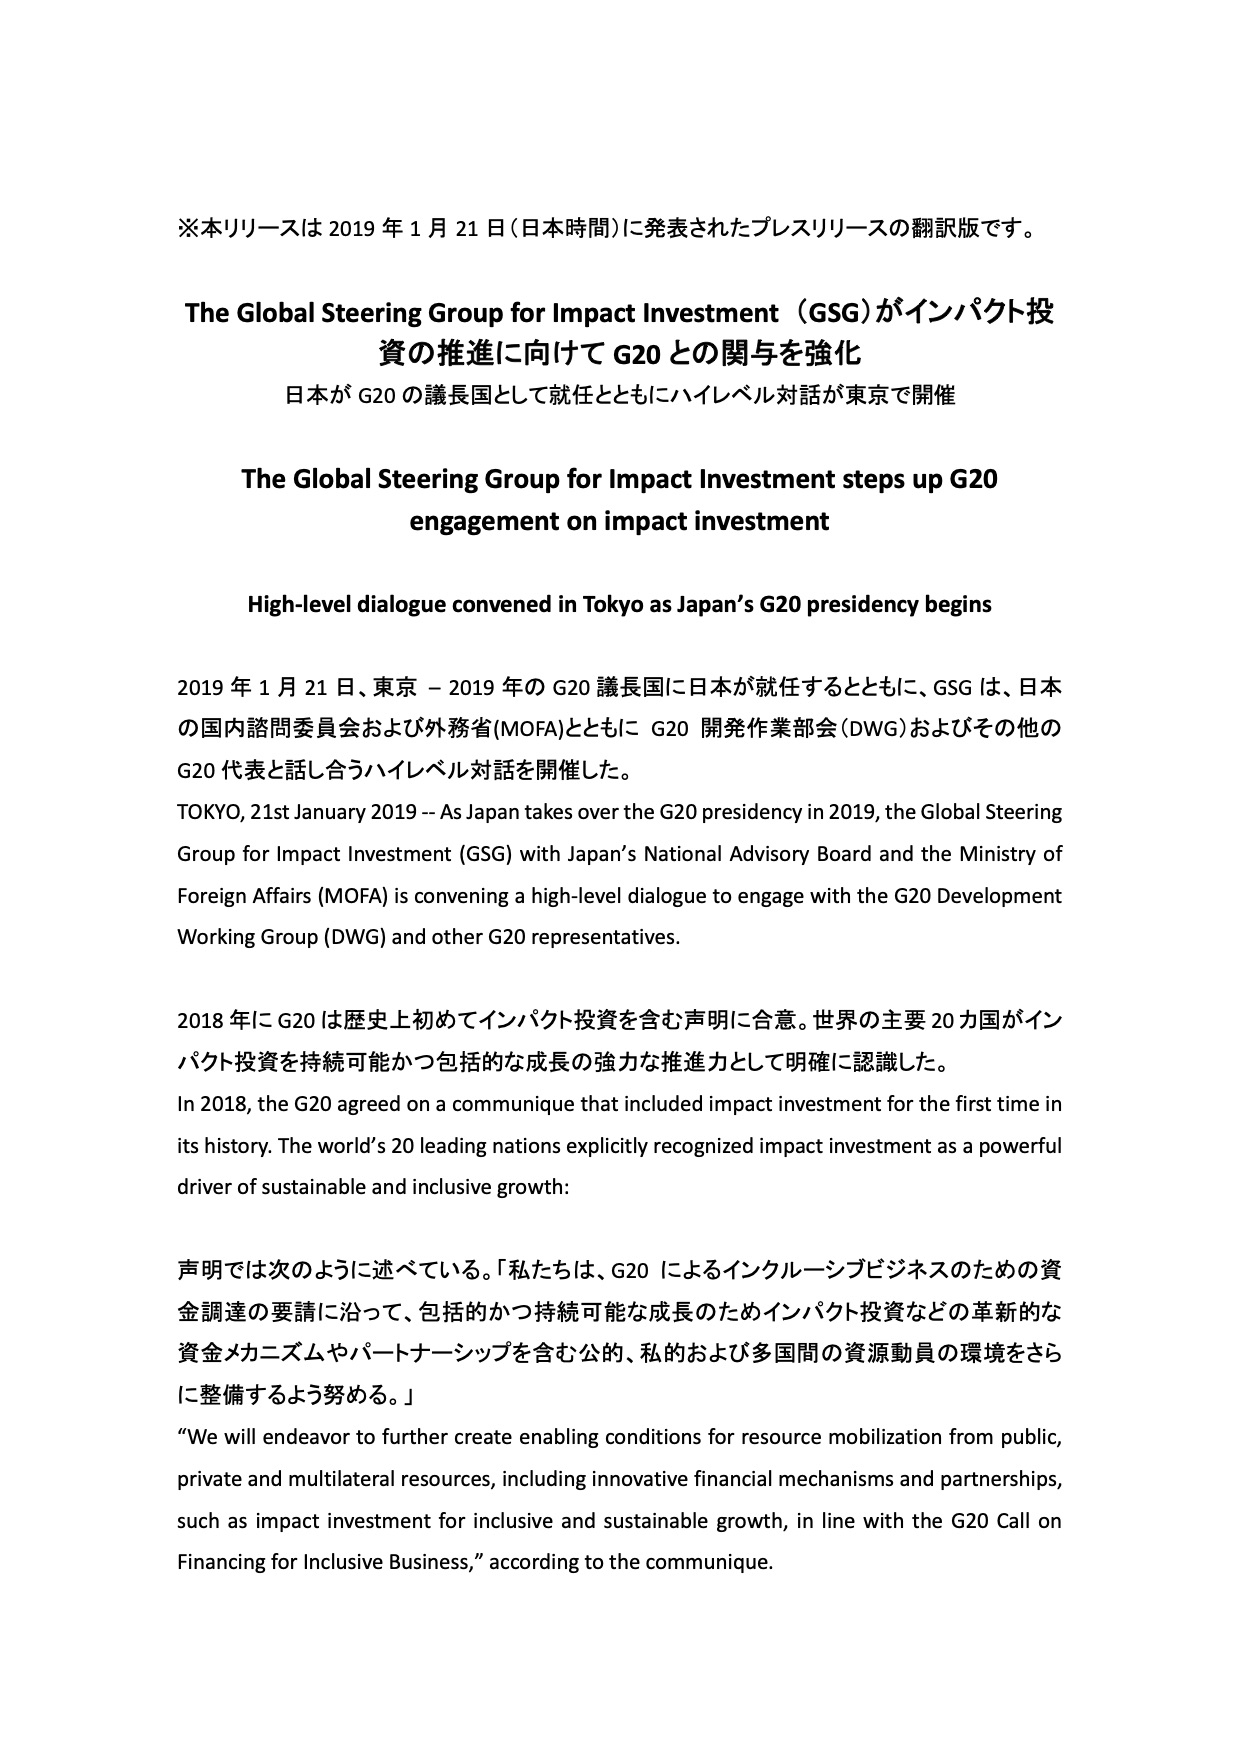 The Global Steering Group for Impact Investment (GSG)がインパクト投資の推進に向けて G20 との関与を強化